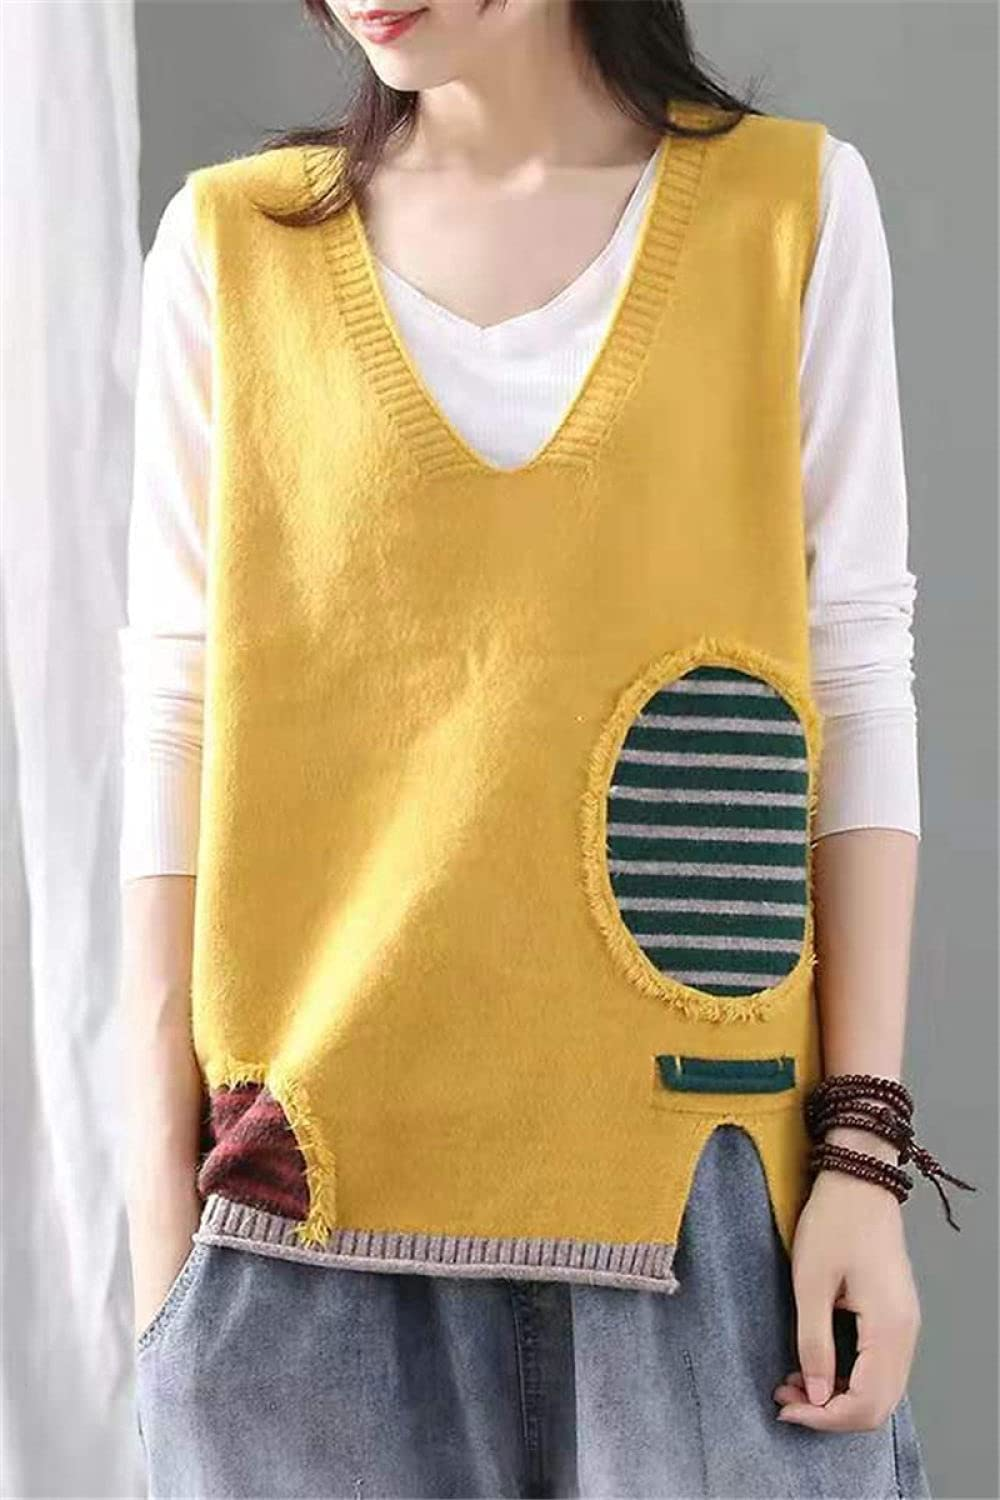 Sweater Vest,Womens Knitted Sweater Vest Soft Vintage Patch Striped Sleeveless Sweater Tank Top V Neck Casual Loose Preppy Style Autumn Winter Girls Sleeveless Jumpers ,Yellow